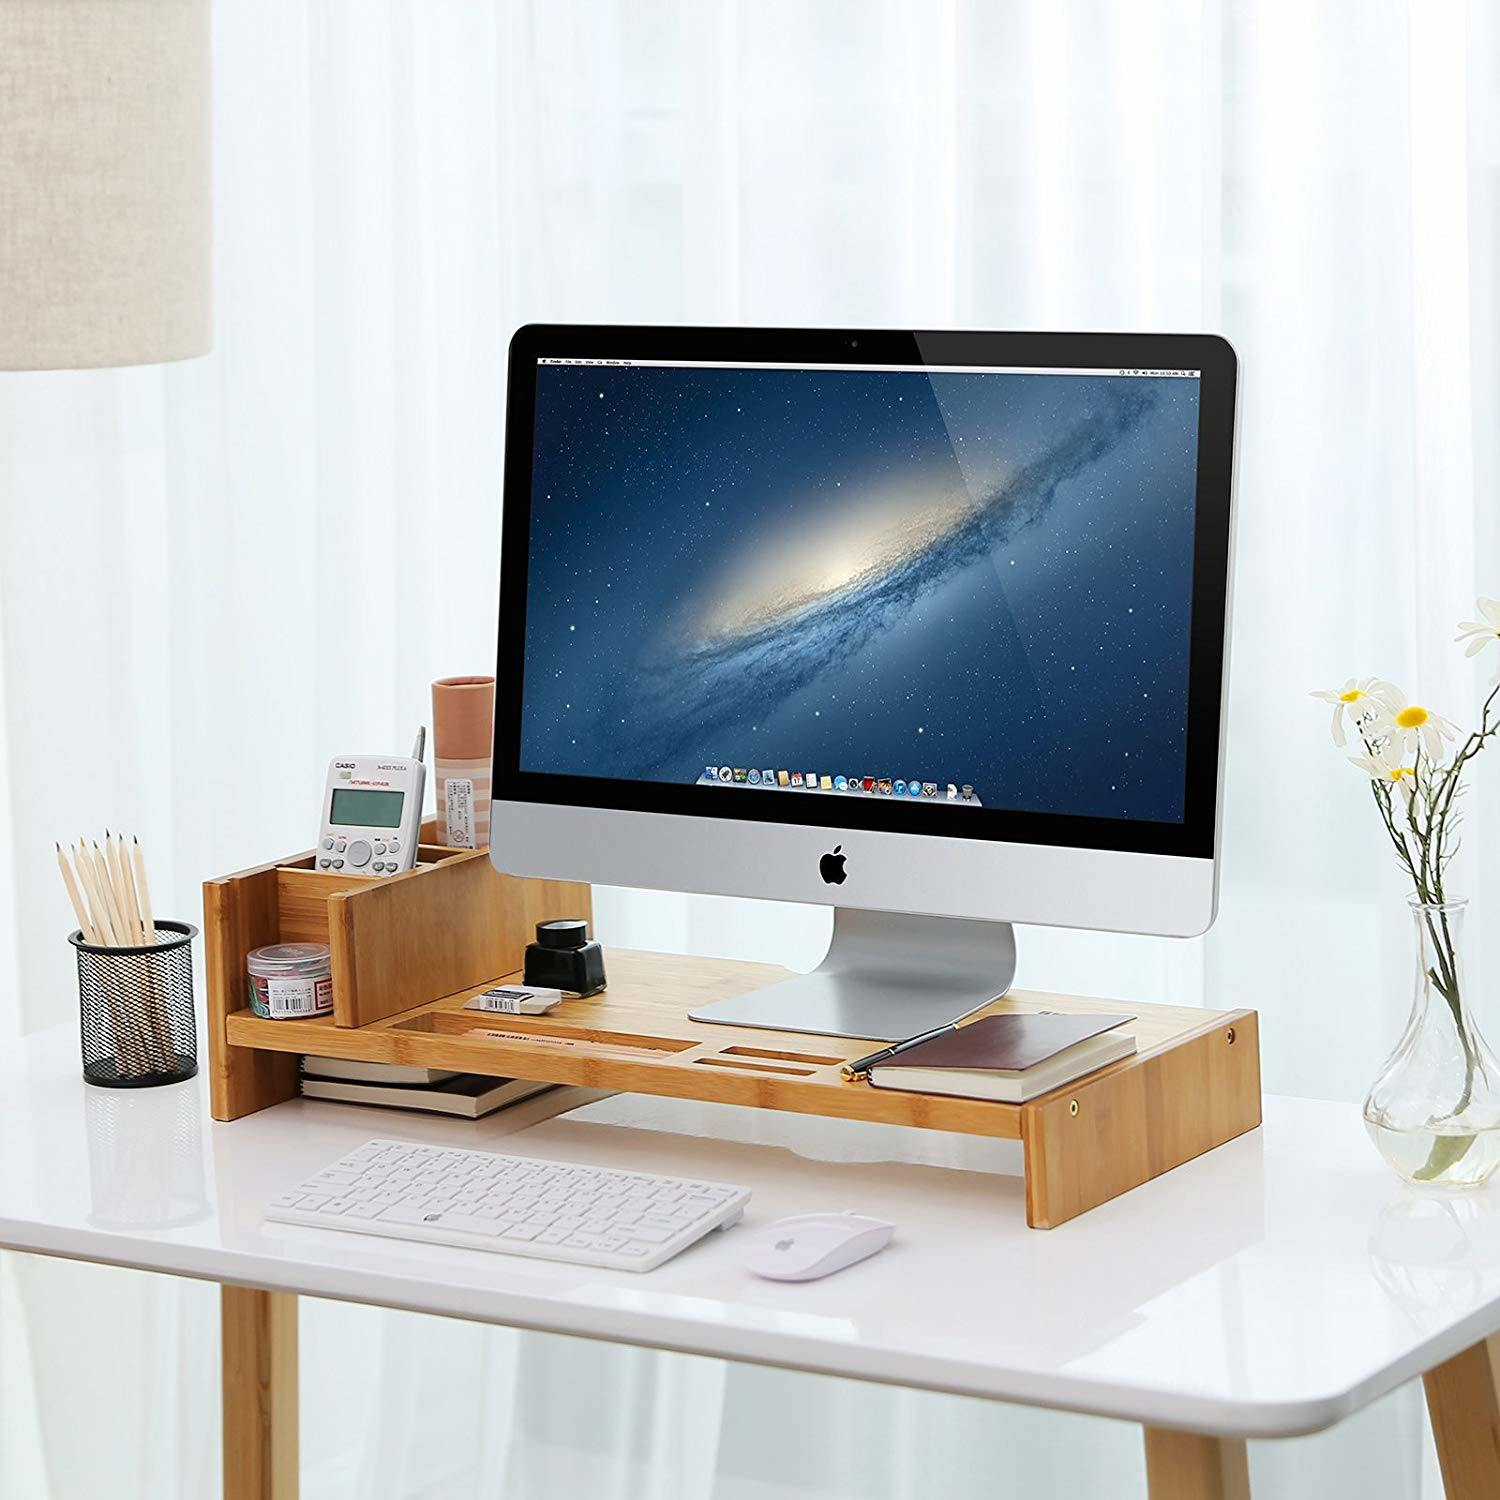 [Hot Item] Bamboo Monitor Stand Riser with Adjustable Storage Organizer  Laptop Stand Desk Organizer for Home Study Office Bt-42